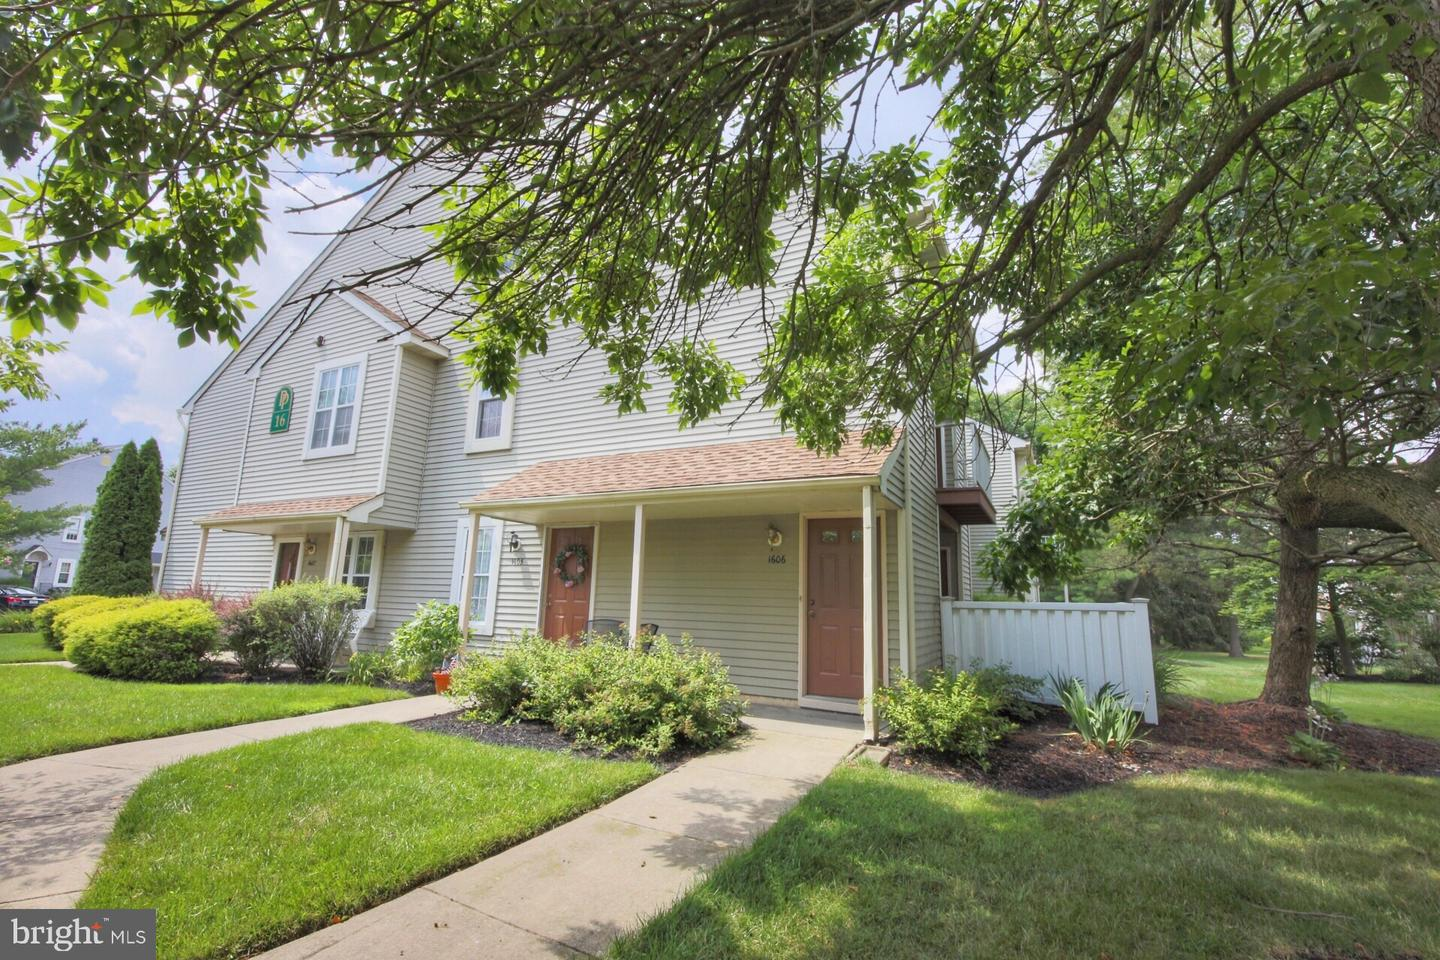 1606 ABERDEEN LN, BLACKWOOD, NJ 08012